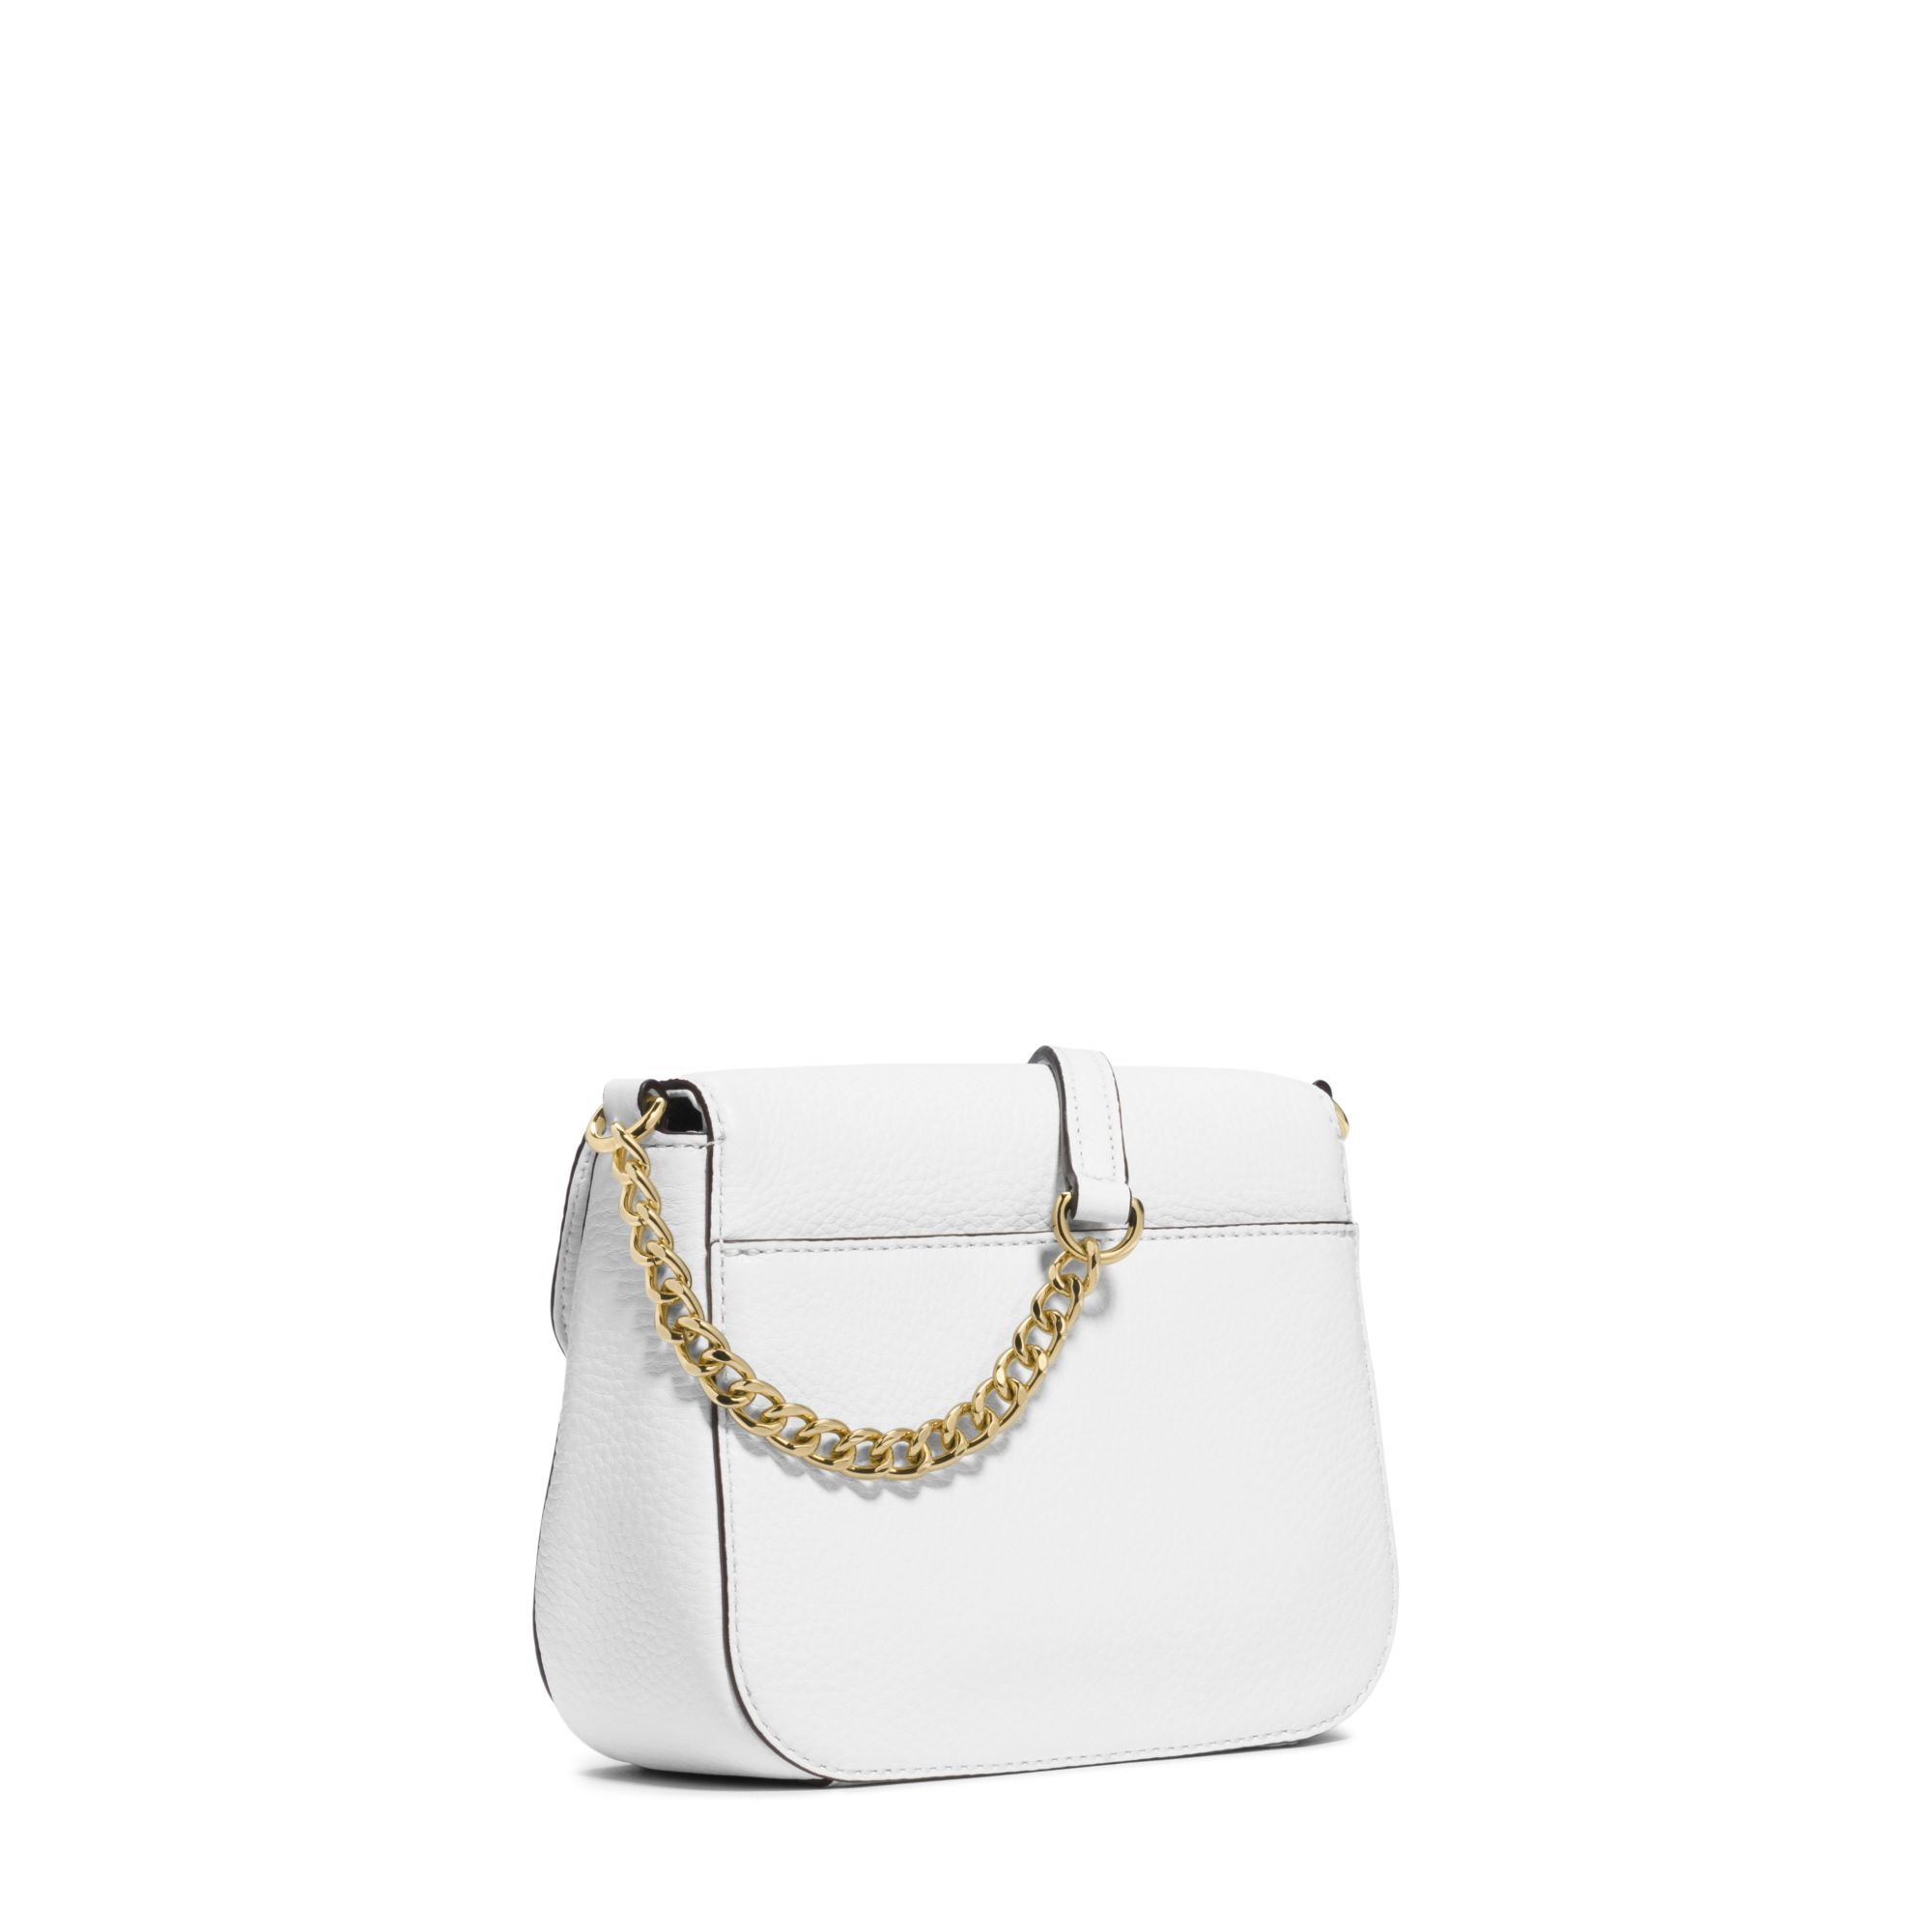 michael kors fulton leather small crossbody in white lyst. Black Bedroom Furniture Sets. Home Design Ideas